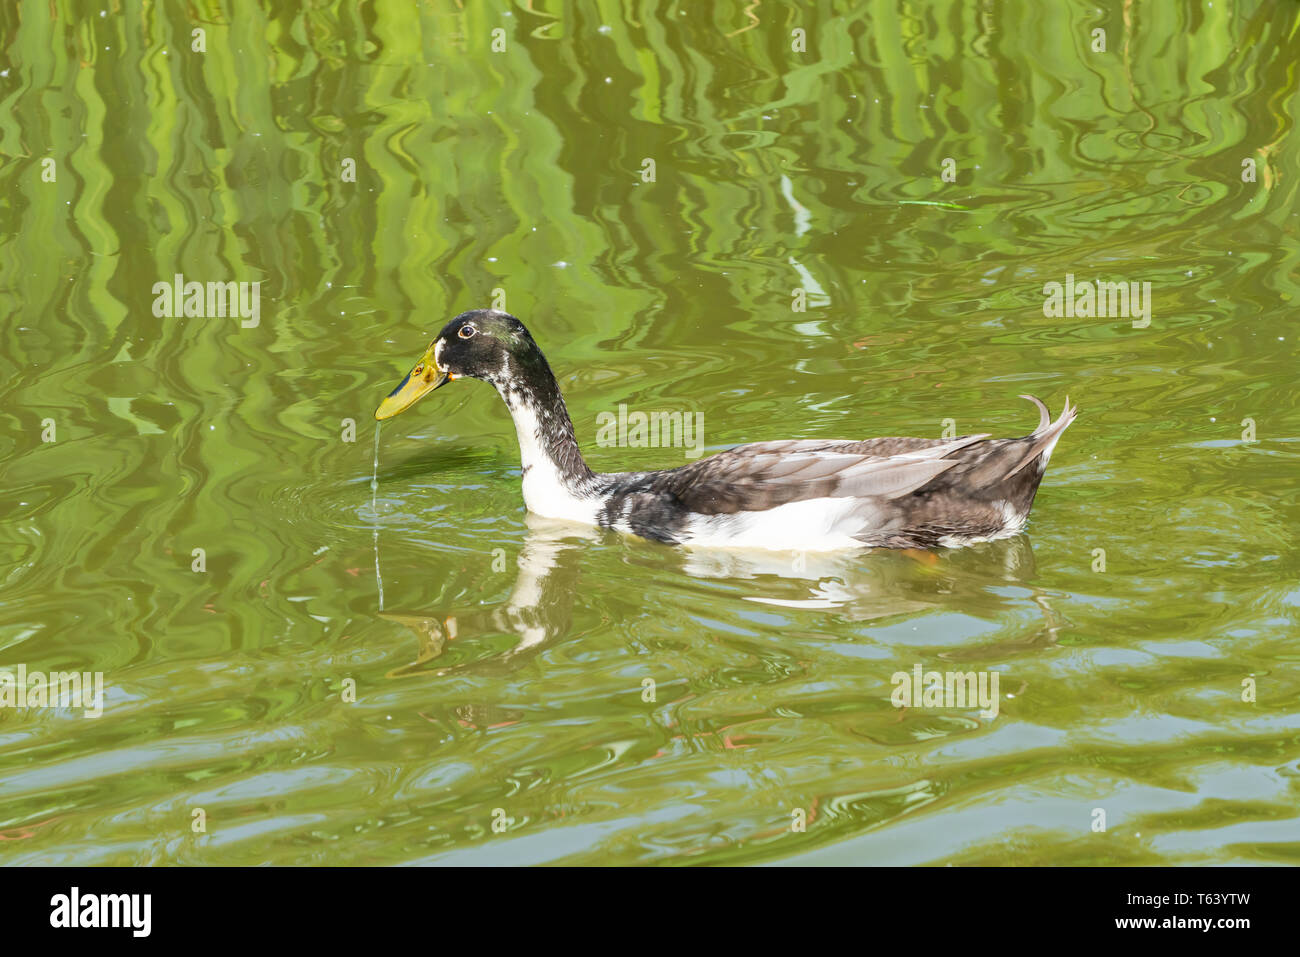 Indian runner duck (Anas platyrhynchos domesticus) on a lake - Stock Image